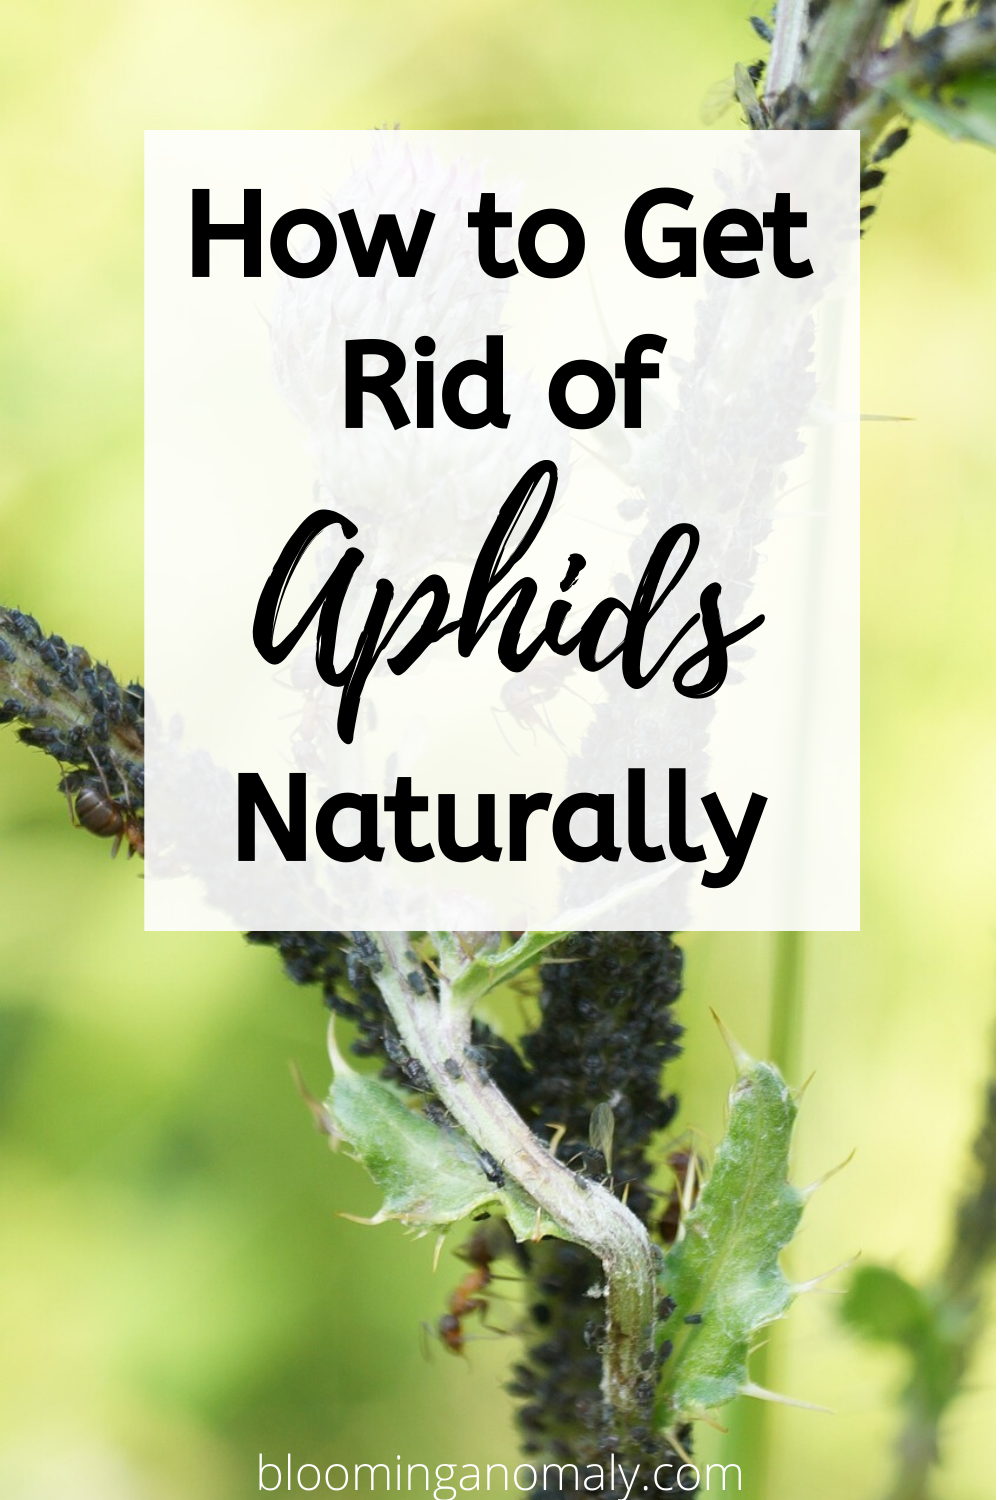 How To Get Rid Of Aphids Naturally In 2020 Get Rid Of Aphids Aphids On Plants Aphids